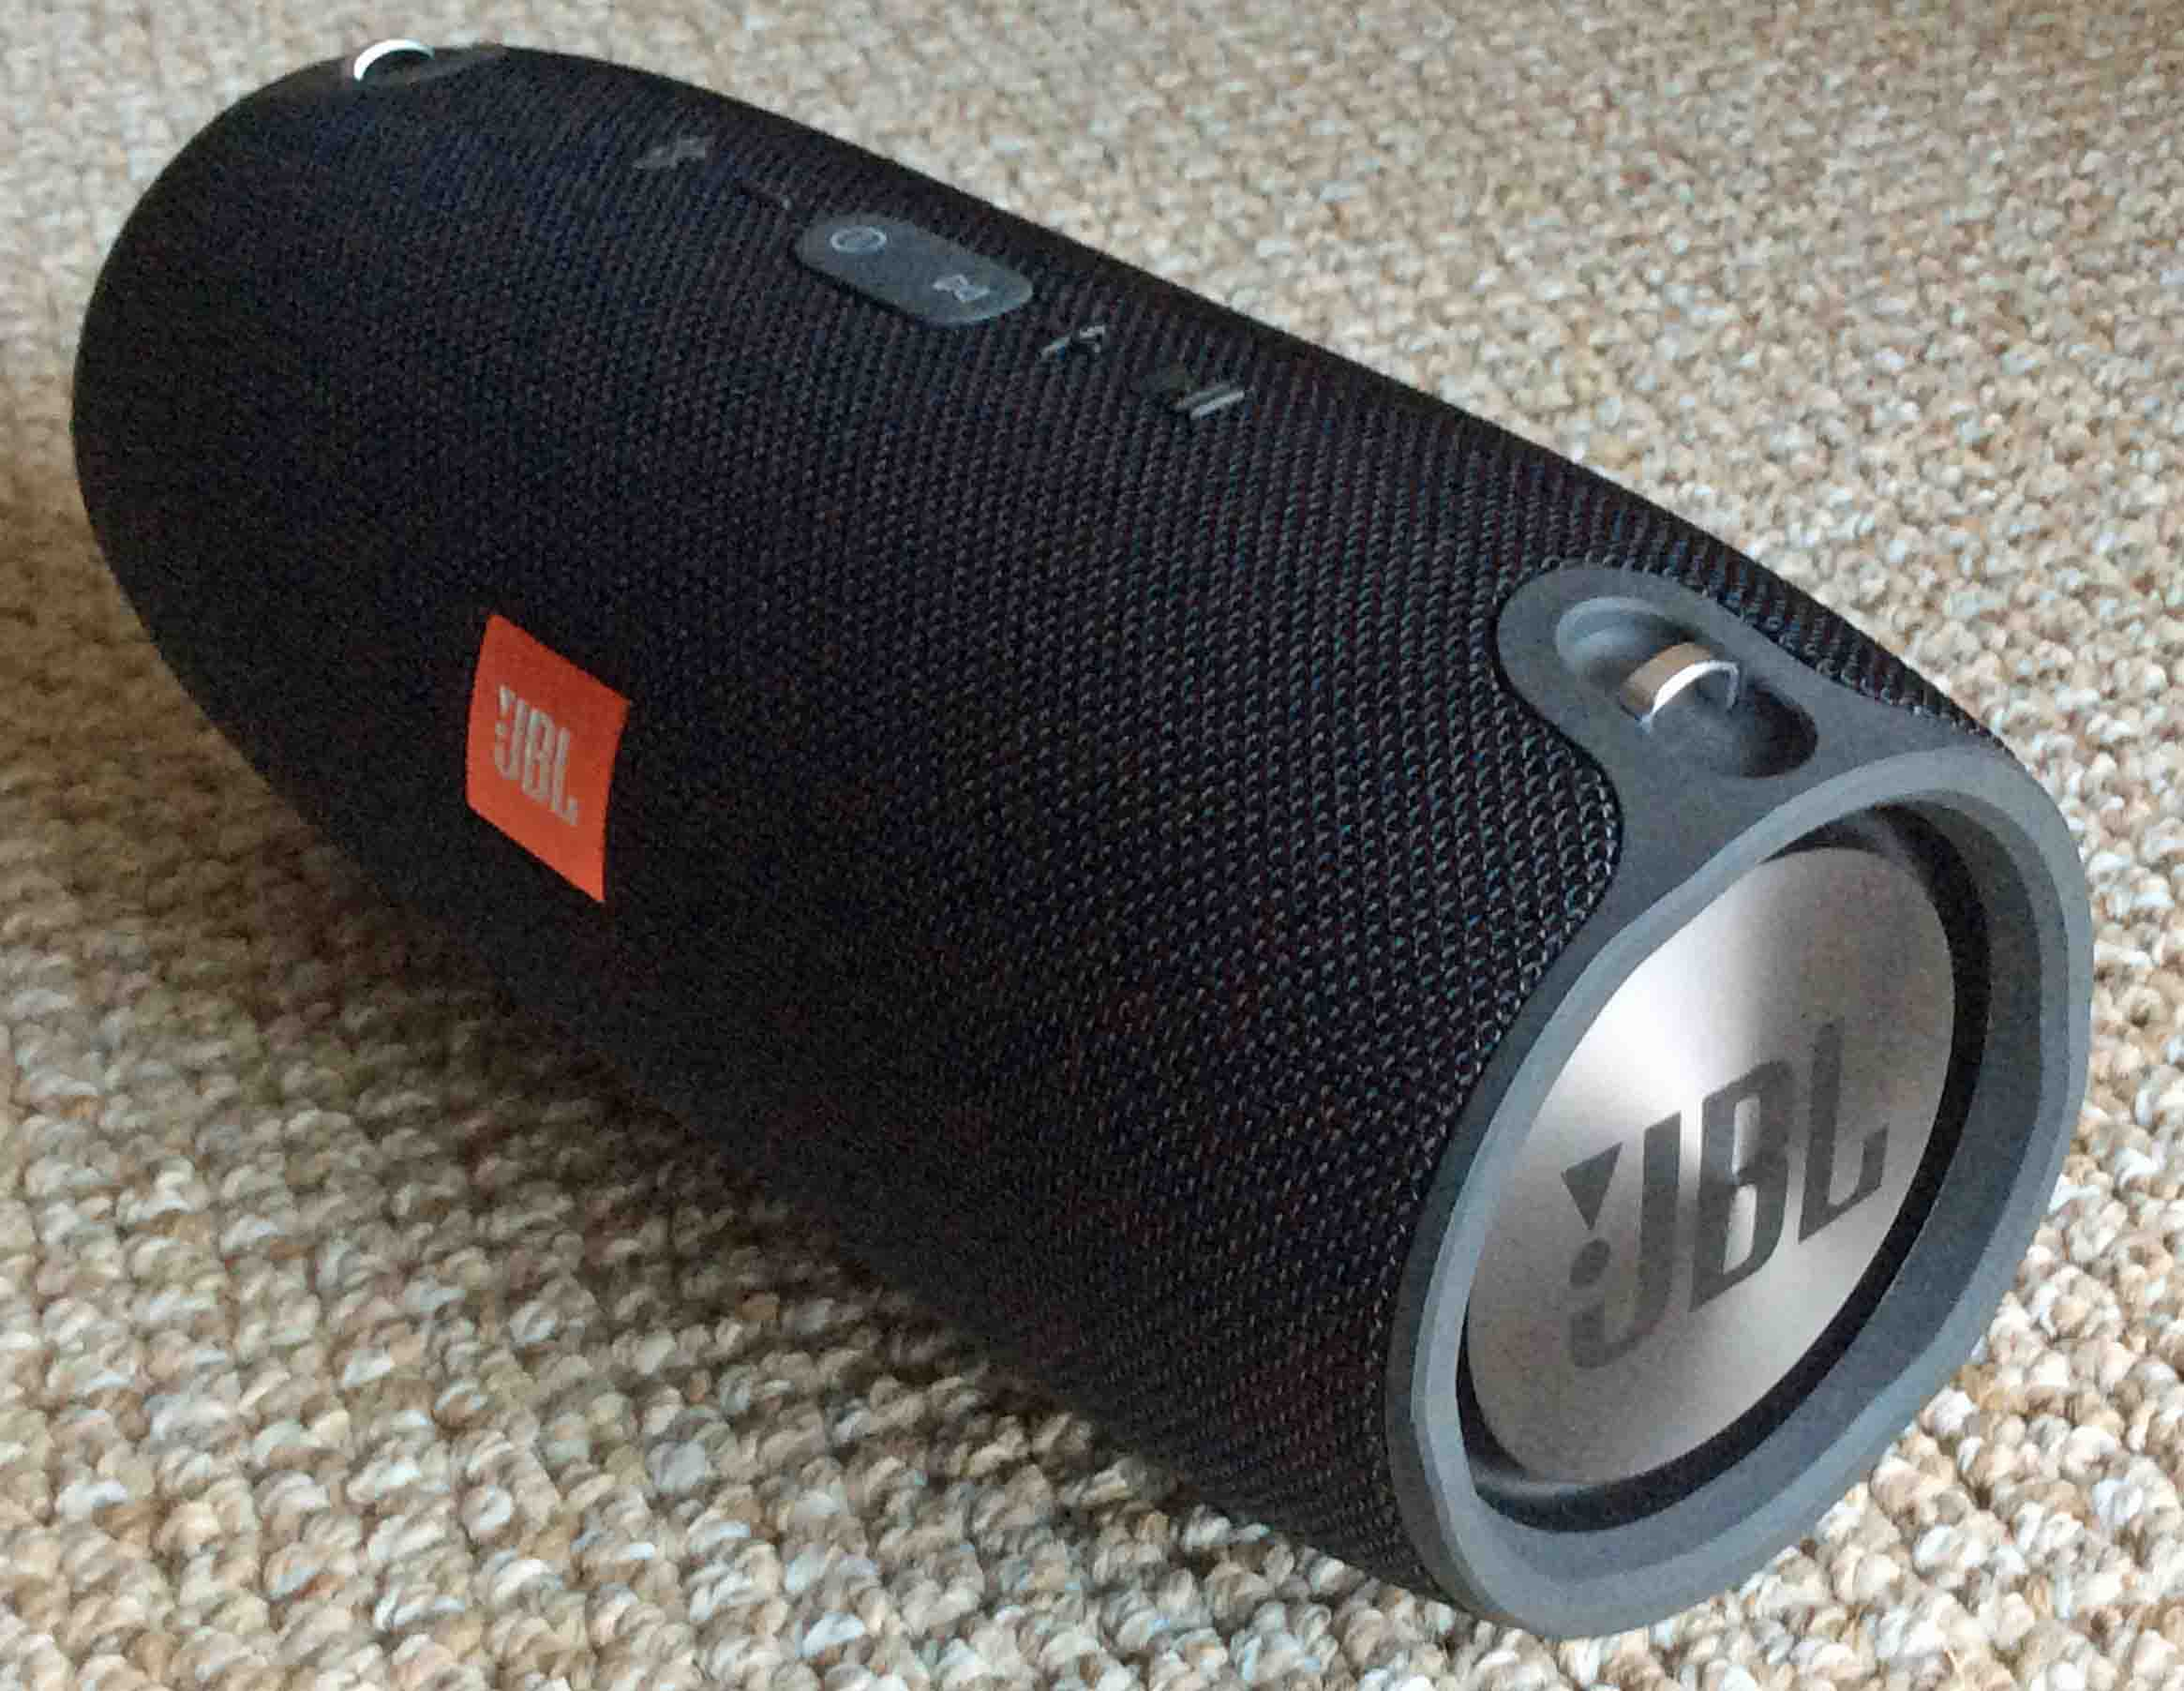 Finding JBL Xtreme Firmware Version Instructions | Tom's Tek Stop